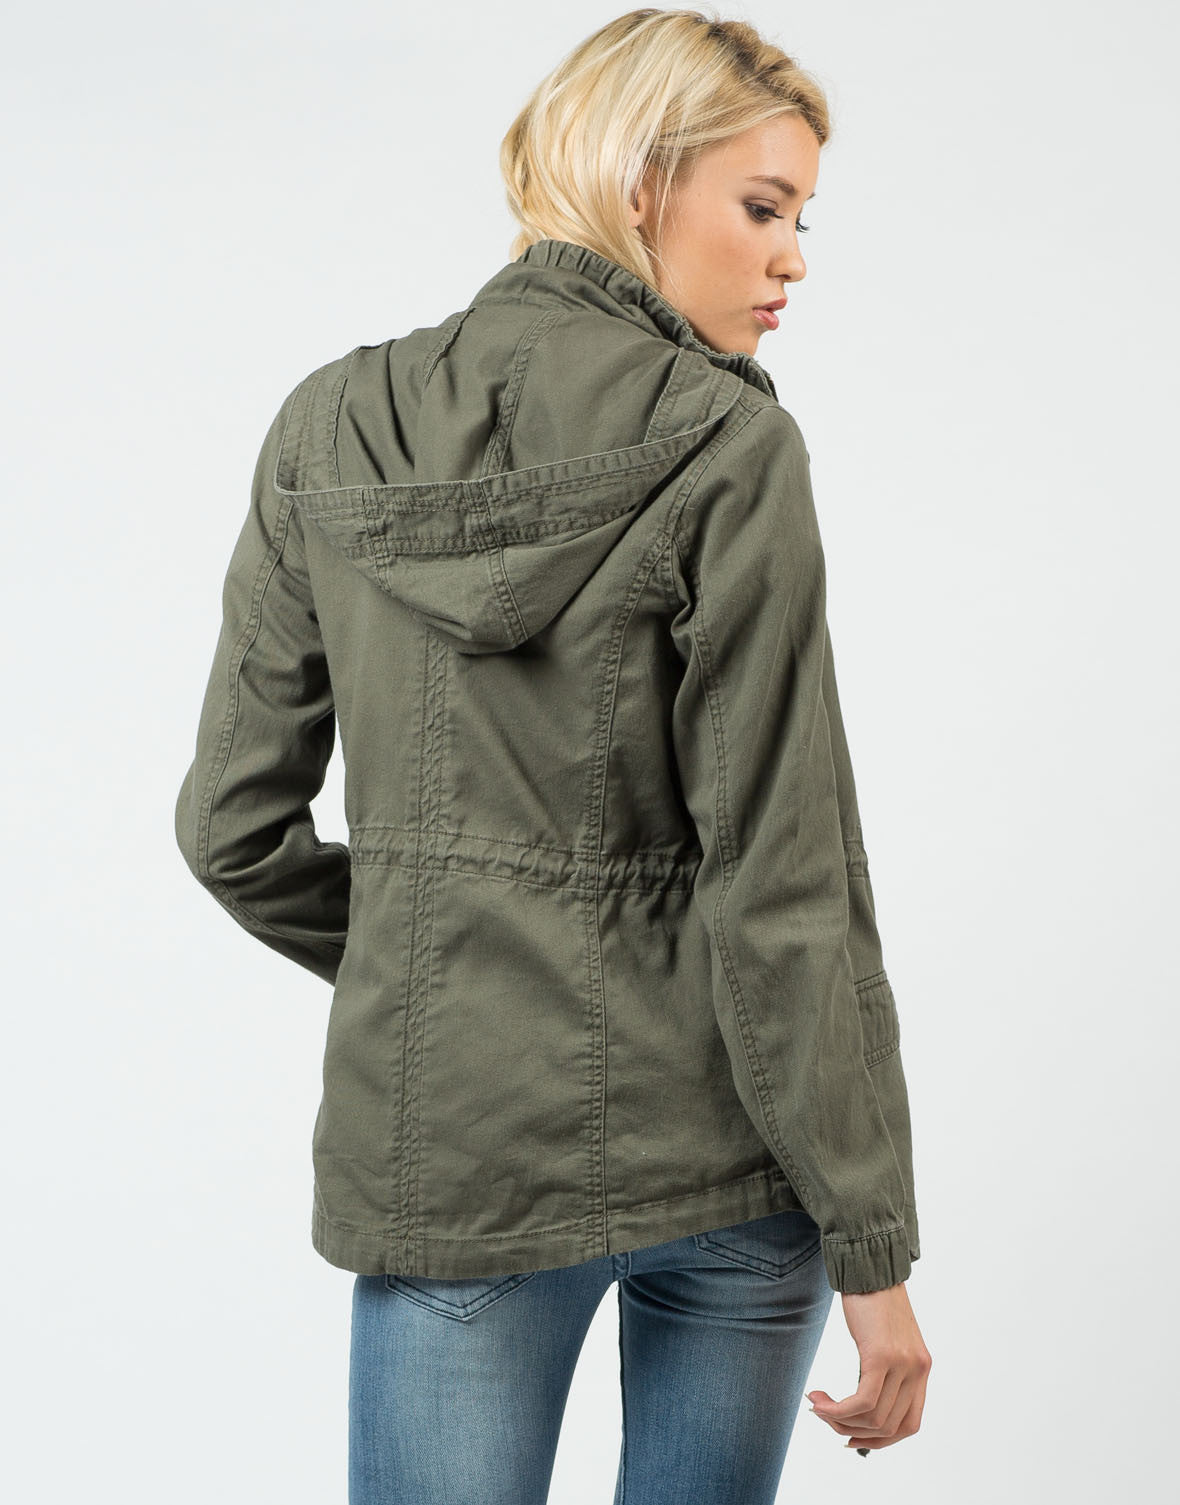 Back View of Military Hooded Jacket